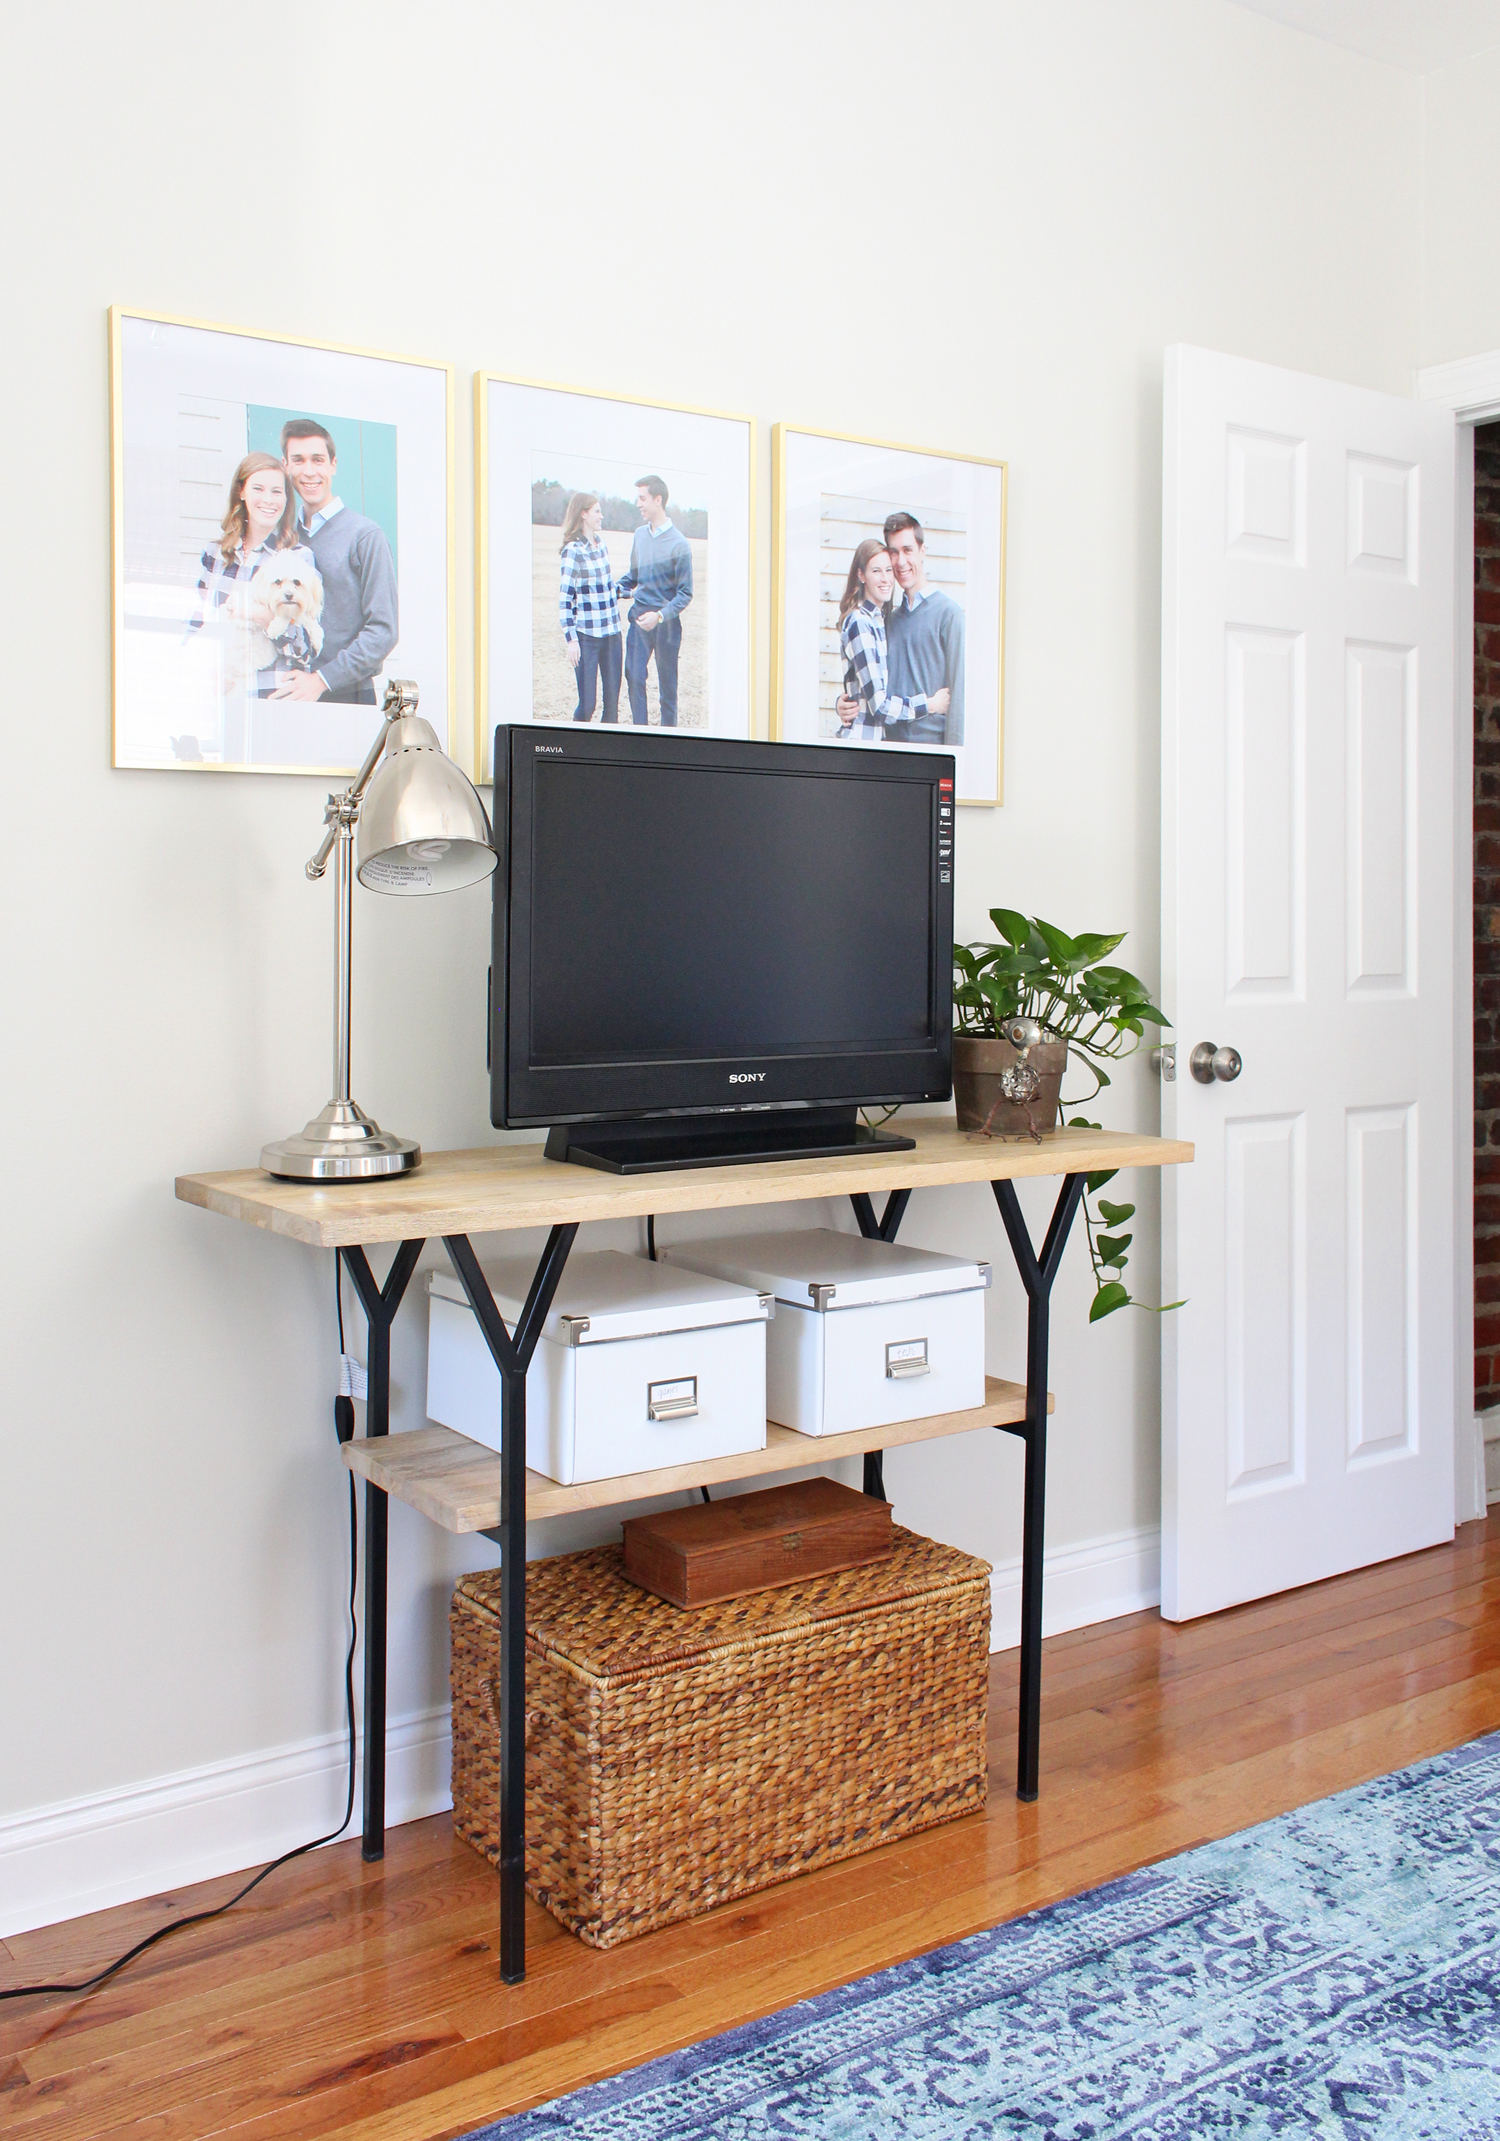 Industrial modern TV console in home office.